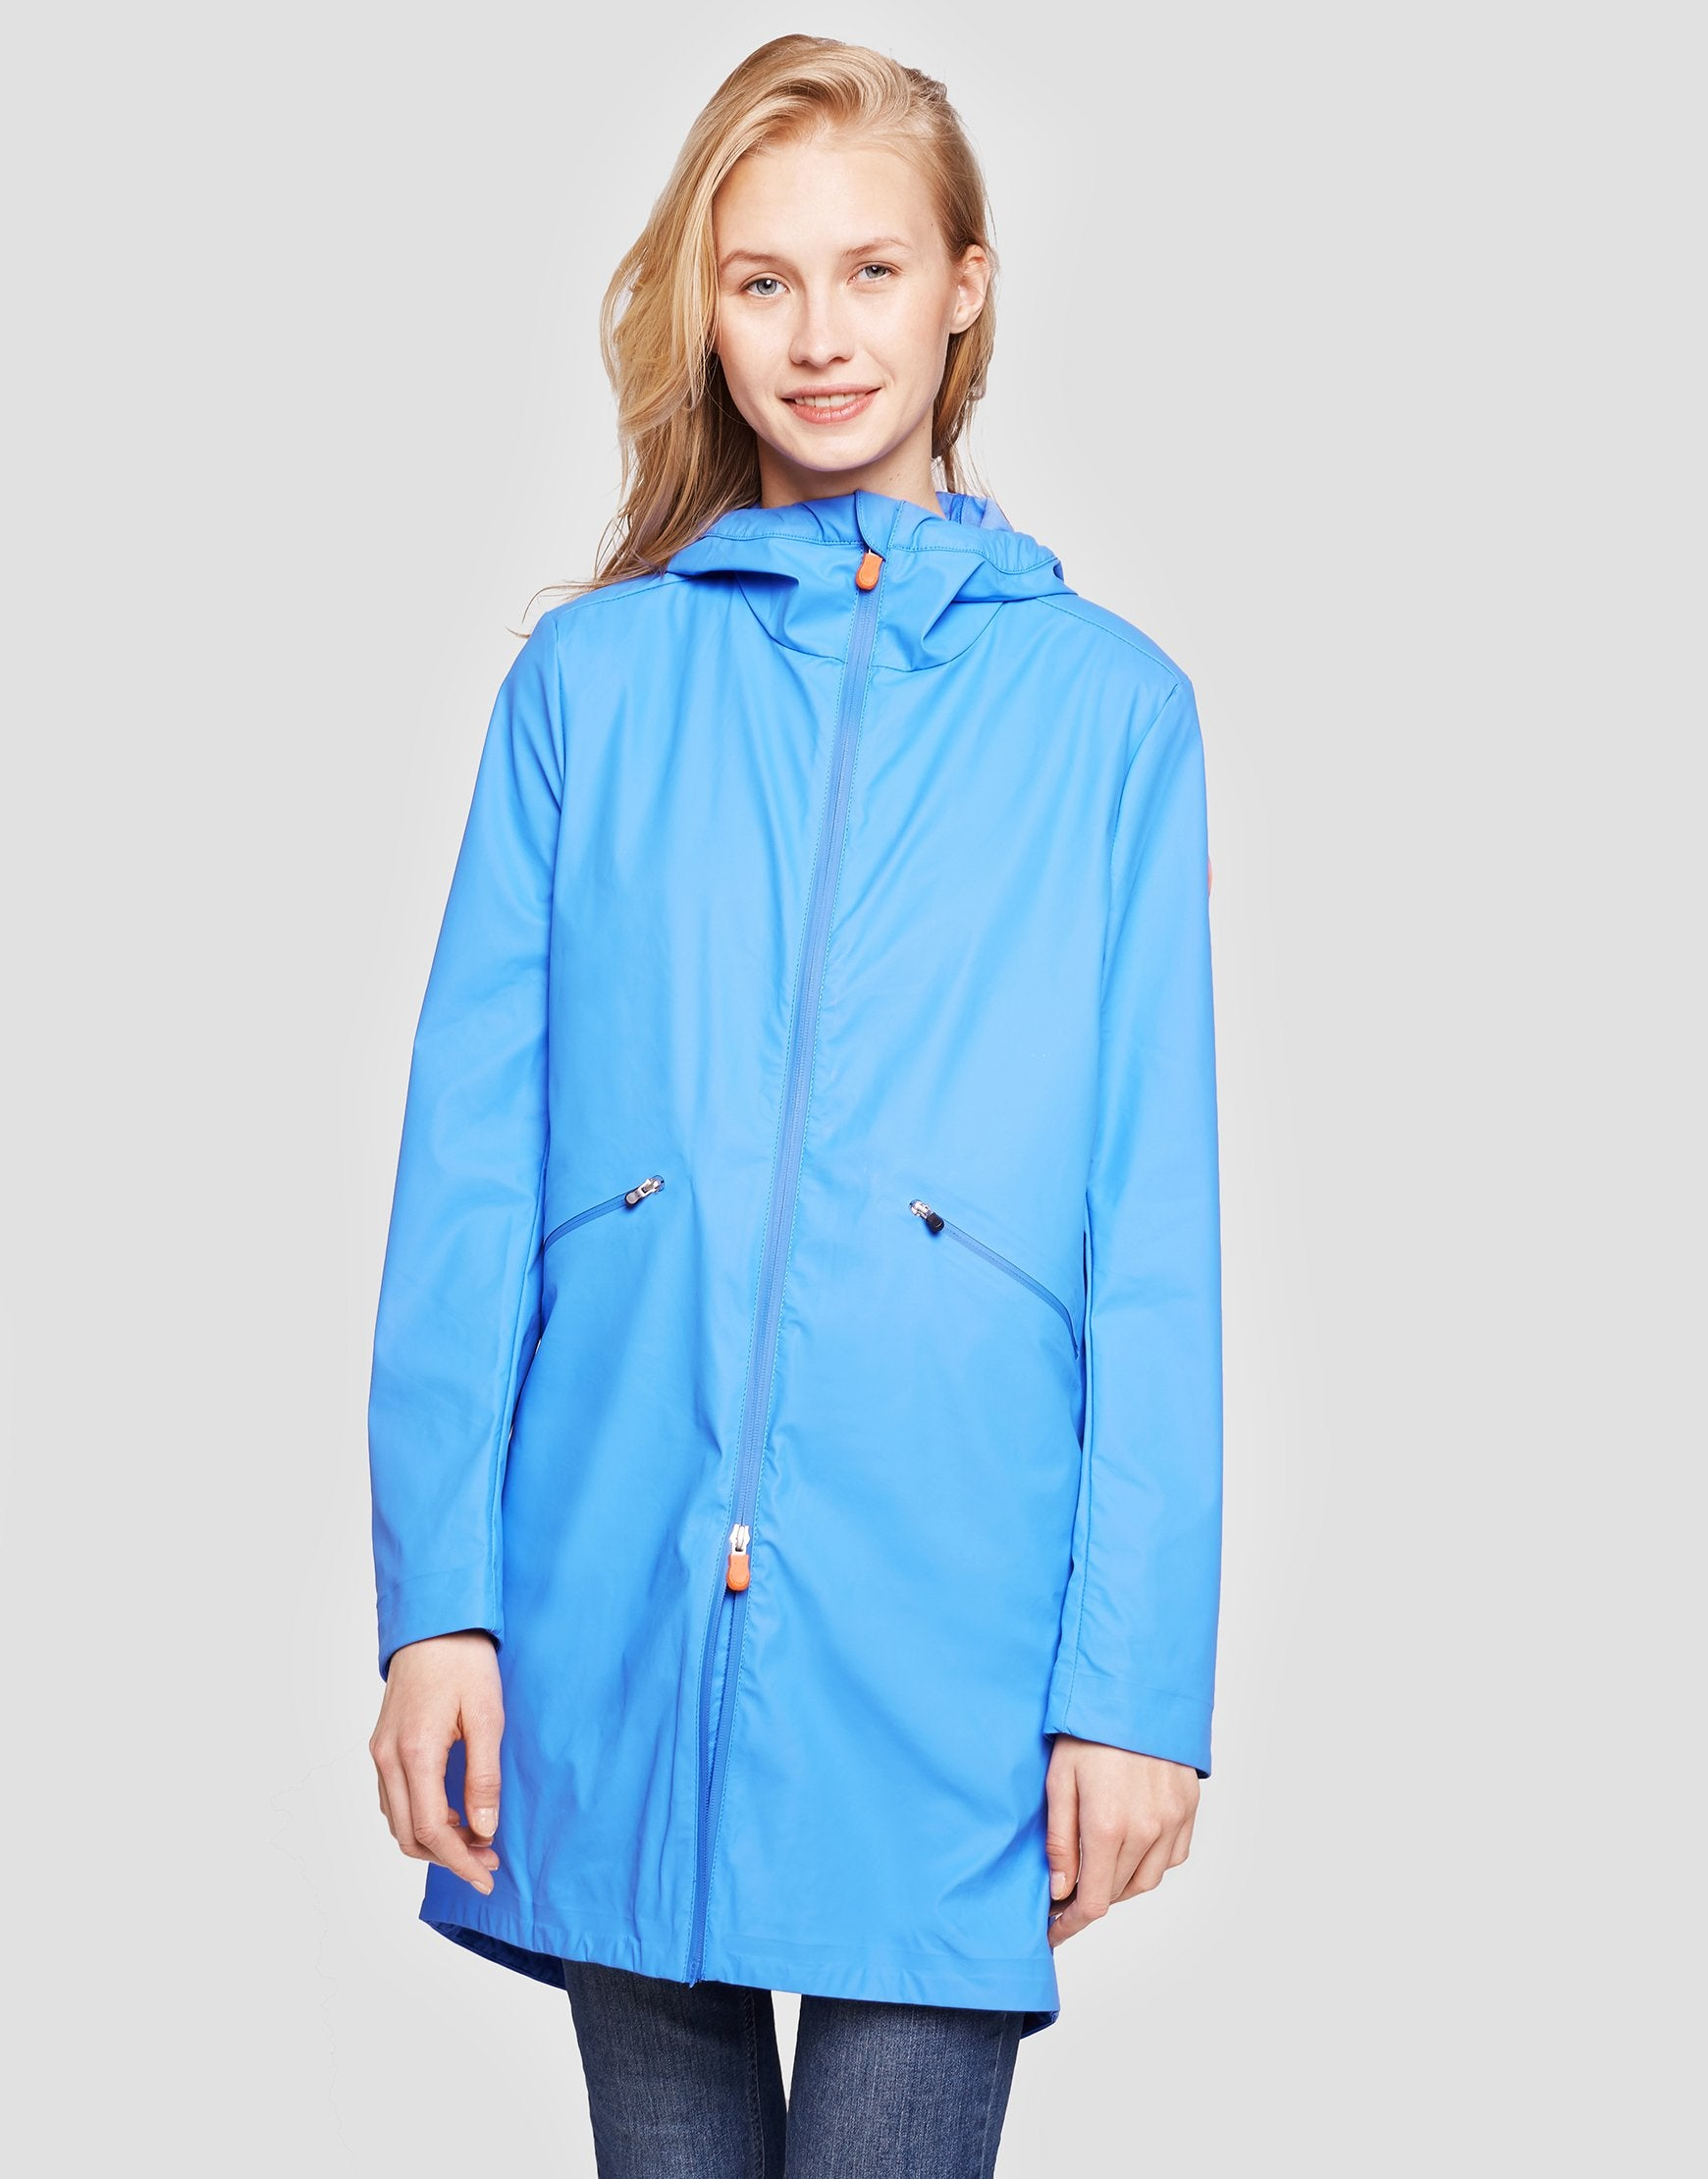 Womens RAIN Hooded Coat in Navy Blue